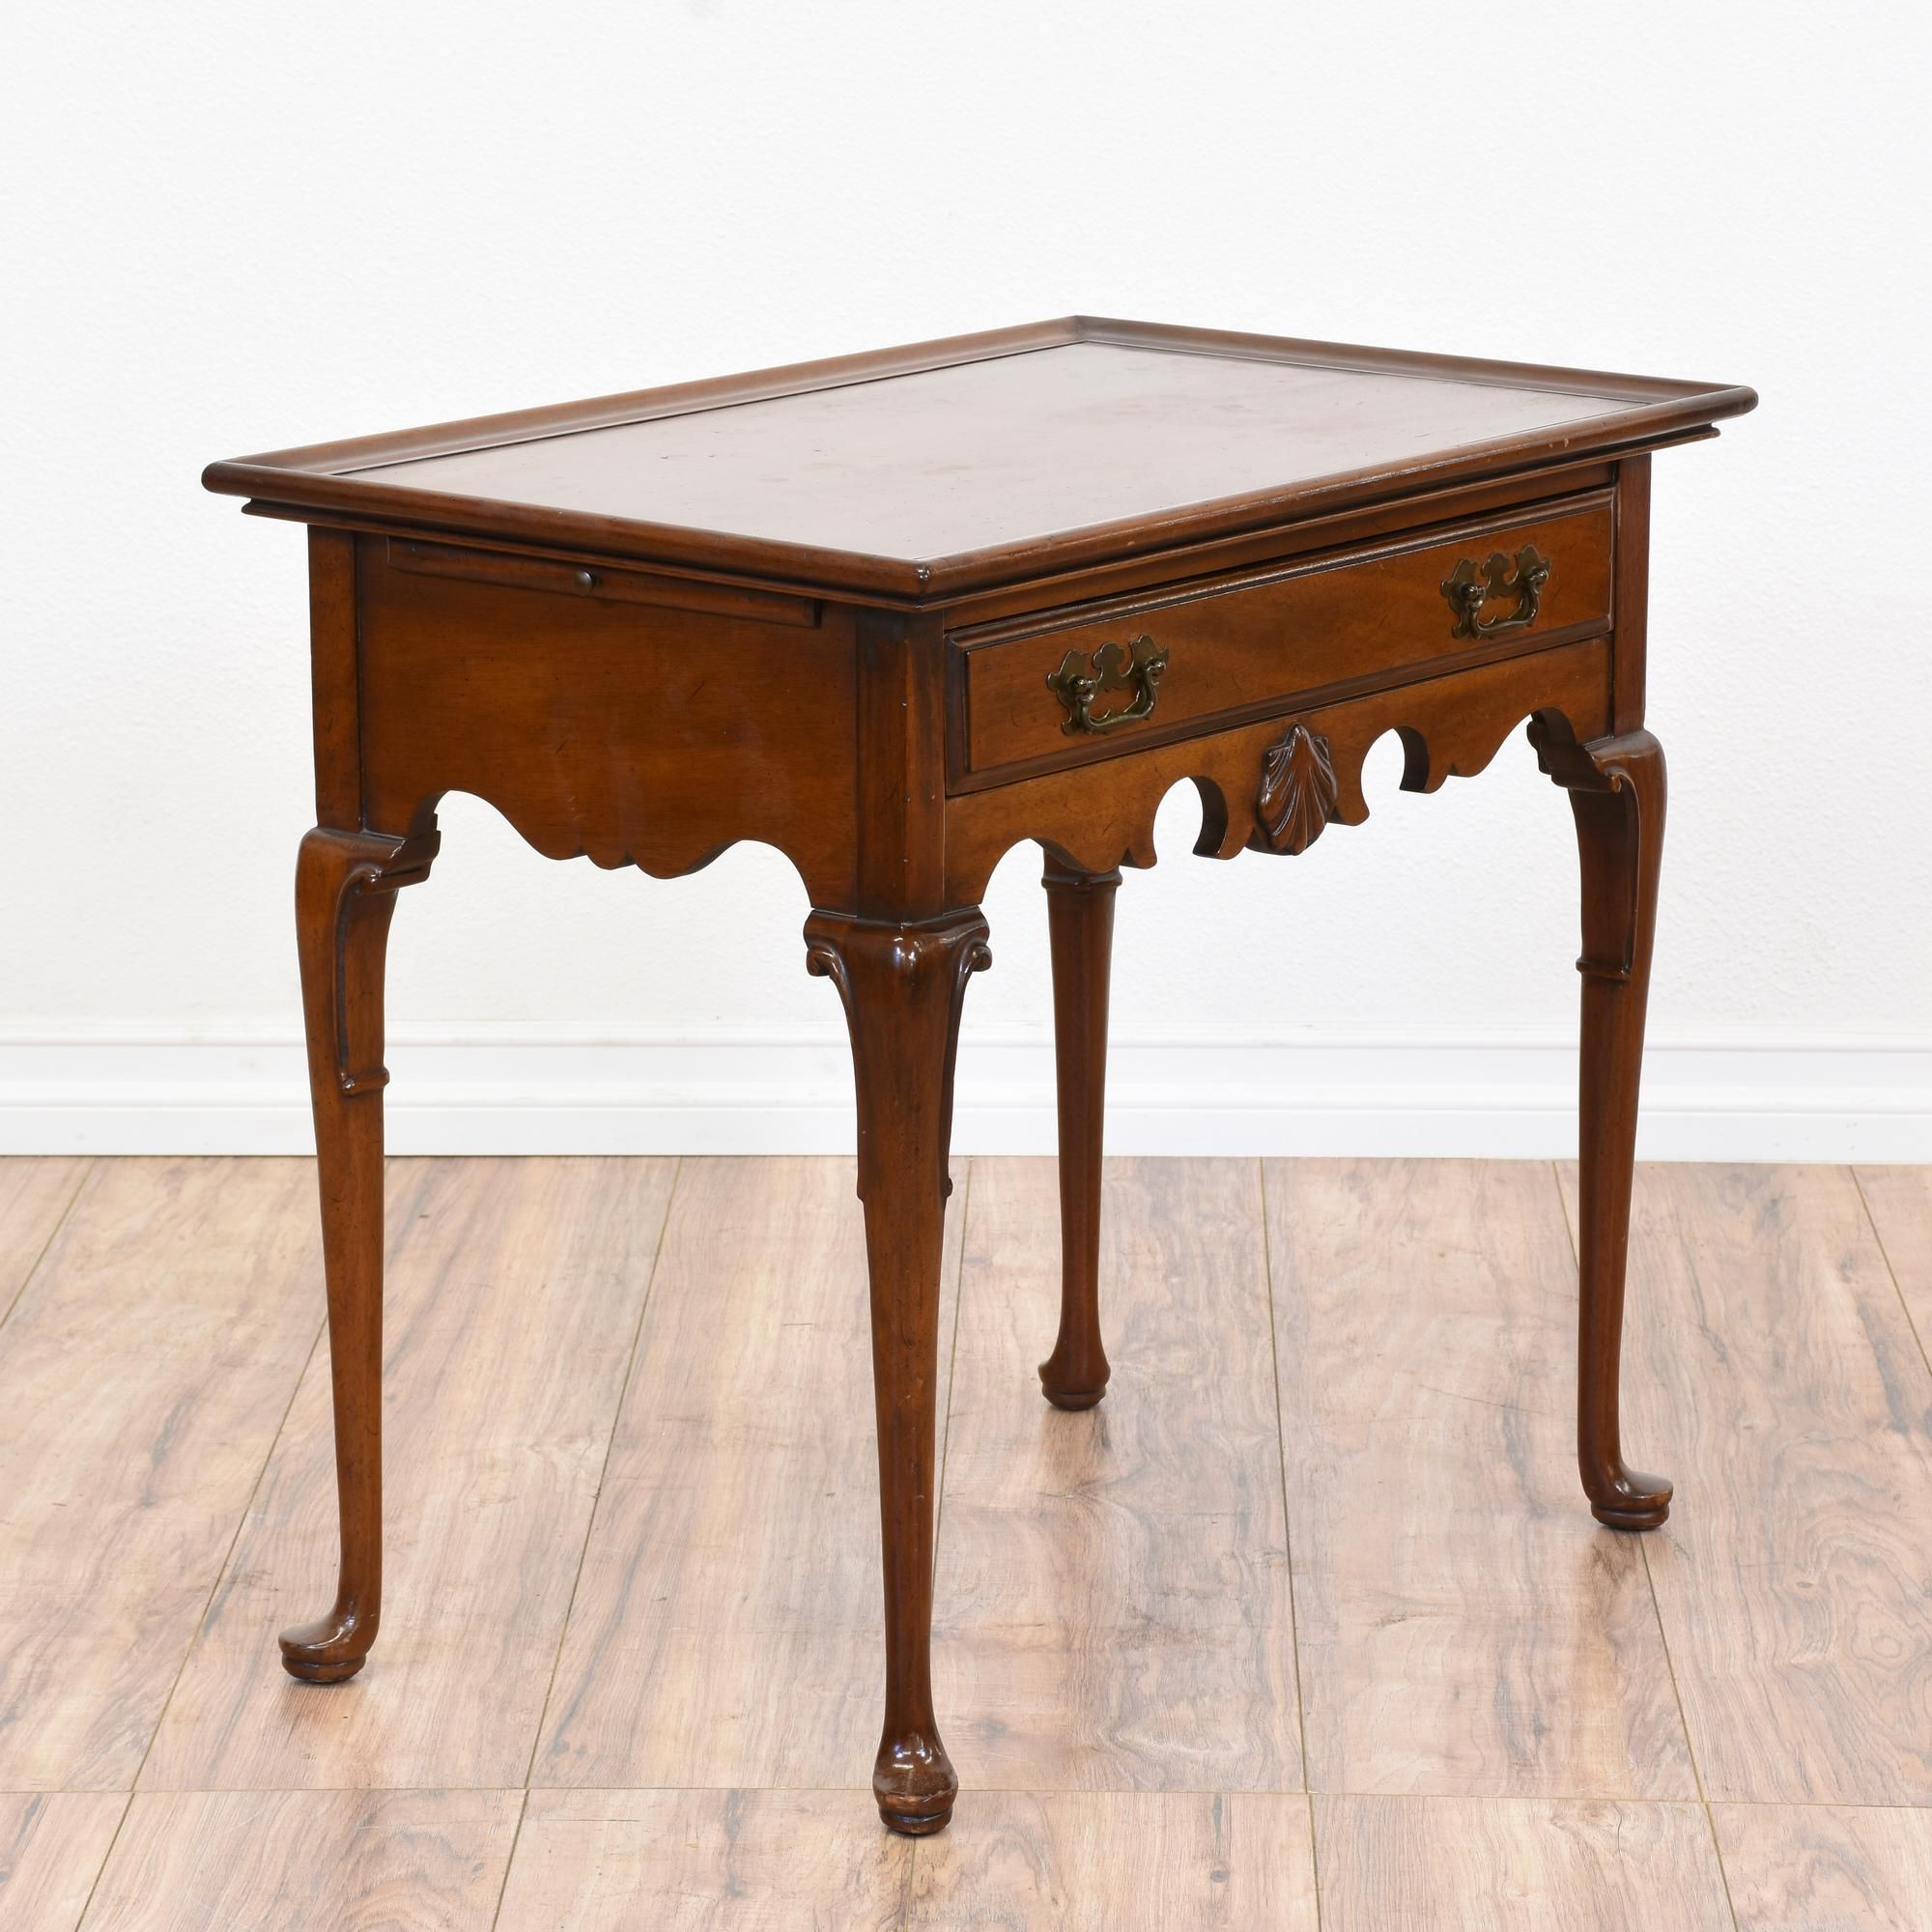 This queen anne style console table is featured in a solid wood this queen anne style console table is featured in a solid wood with a glossy light cherry finish and curved trim this sofa table is in great condition geotapseo Choice Image